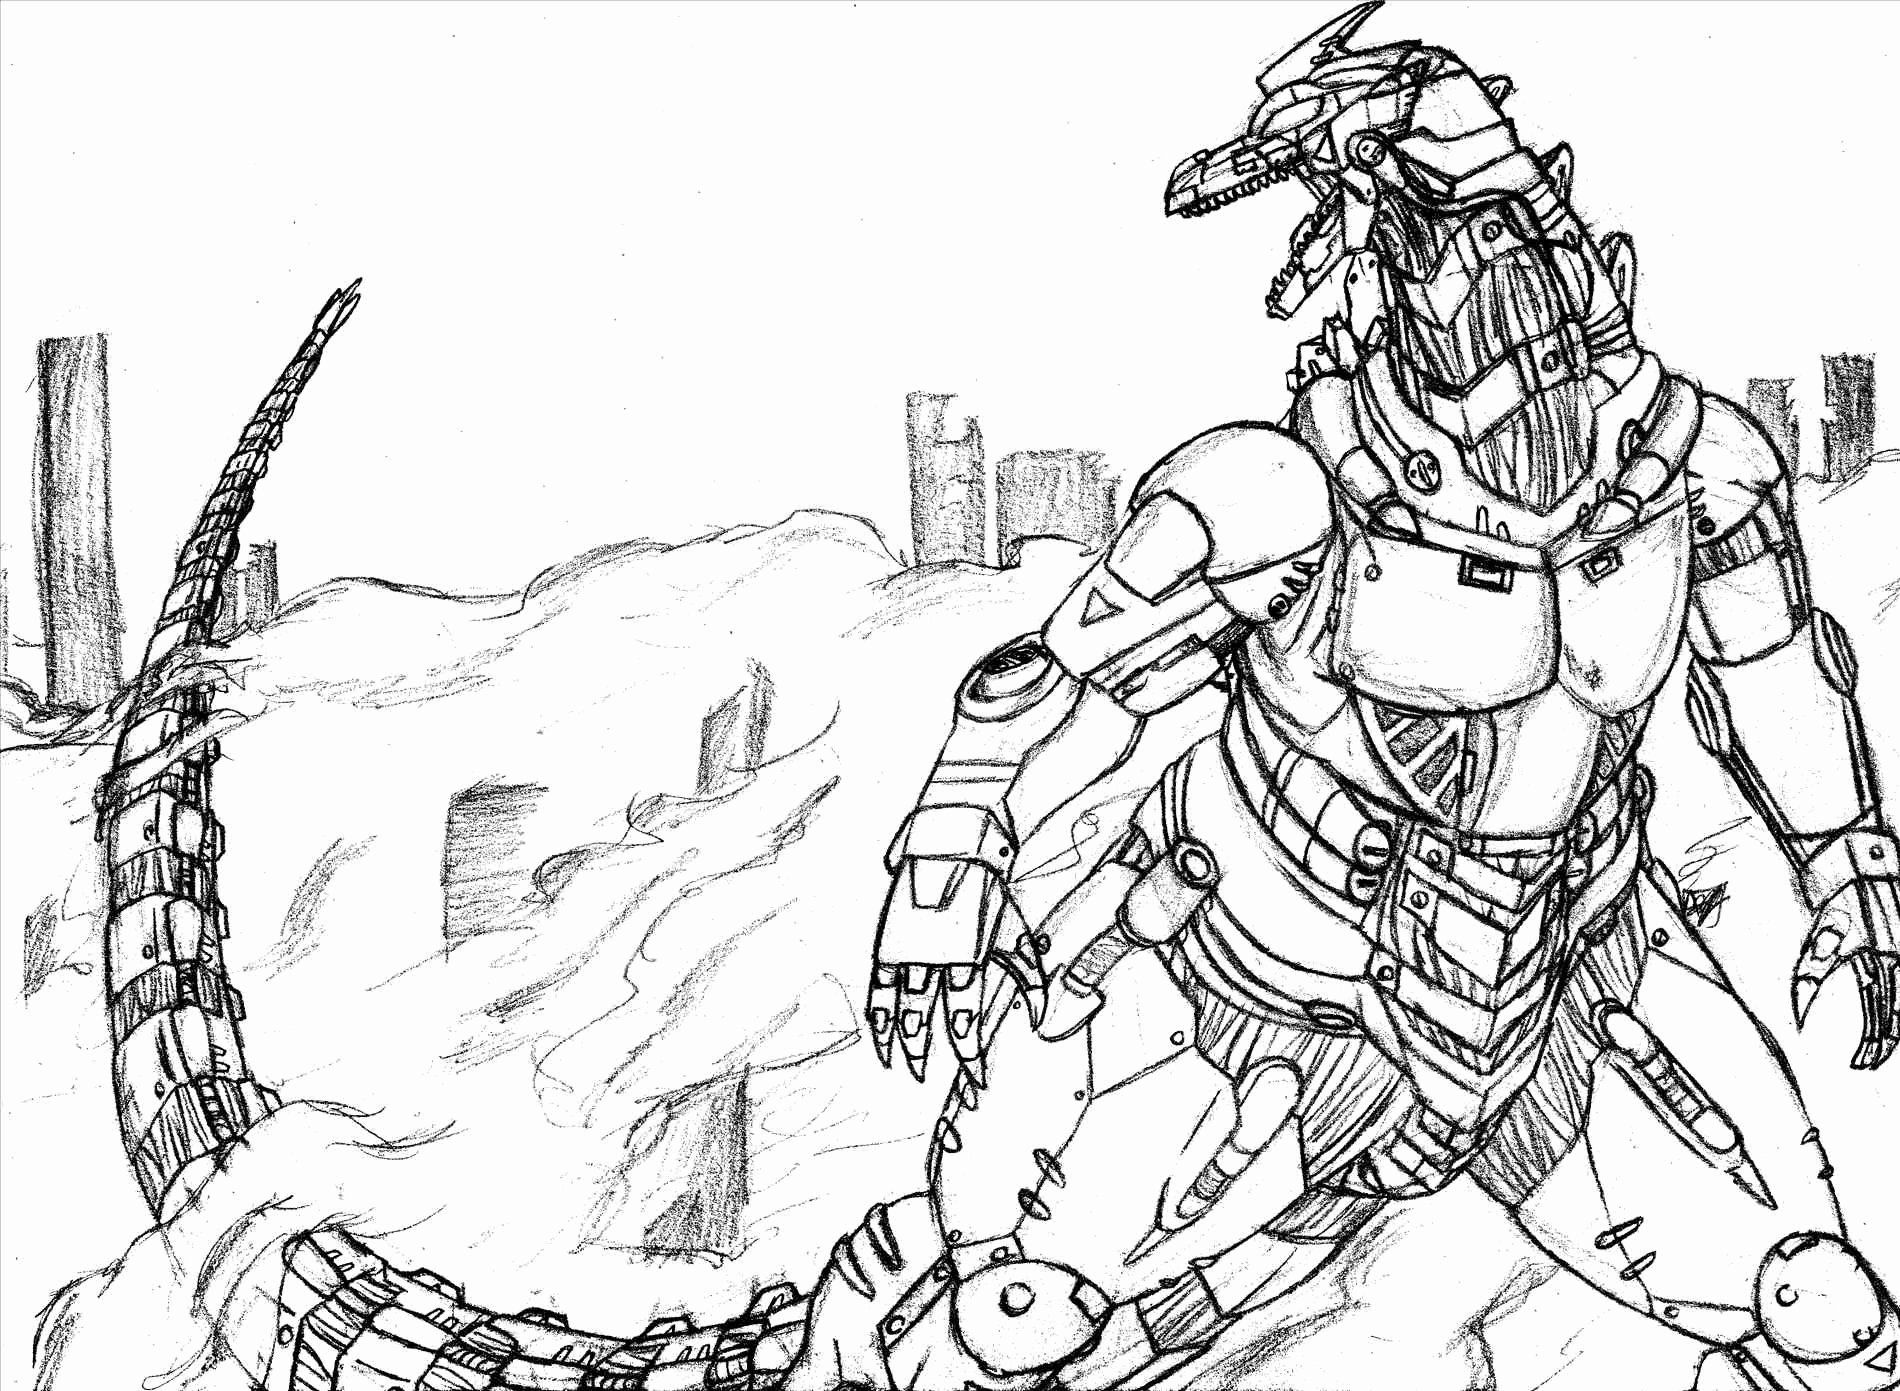 Zoo Keeper Coloring Page Luxury Mechagodzilla Coloring Pages At Getcolorings Dinosaur Pictures Kiryu Animal Coloring Pages